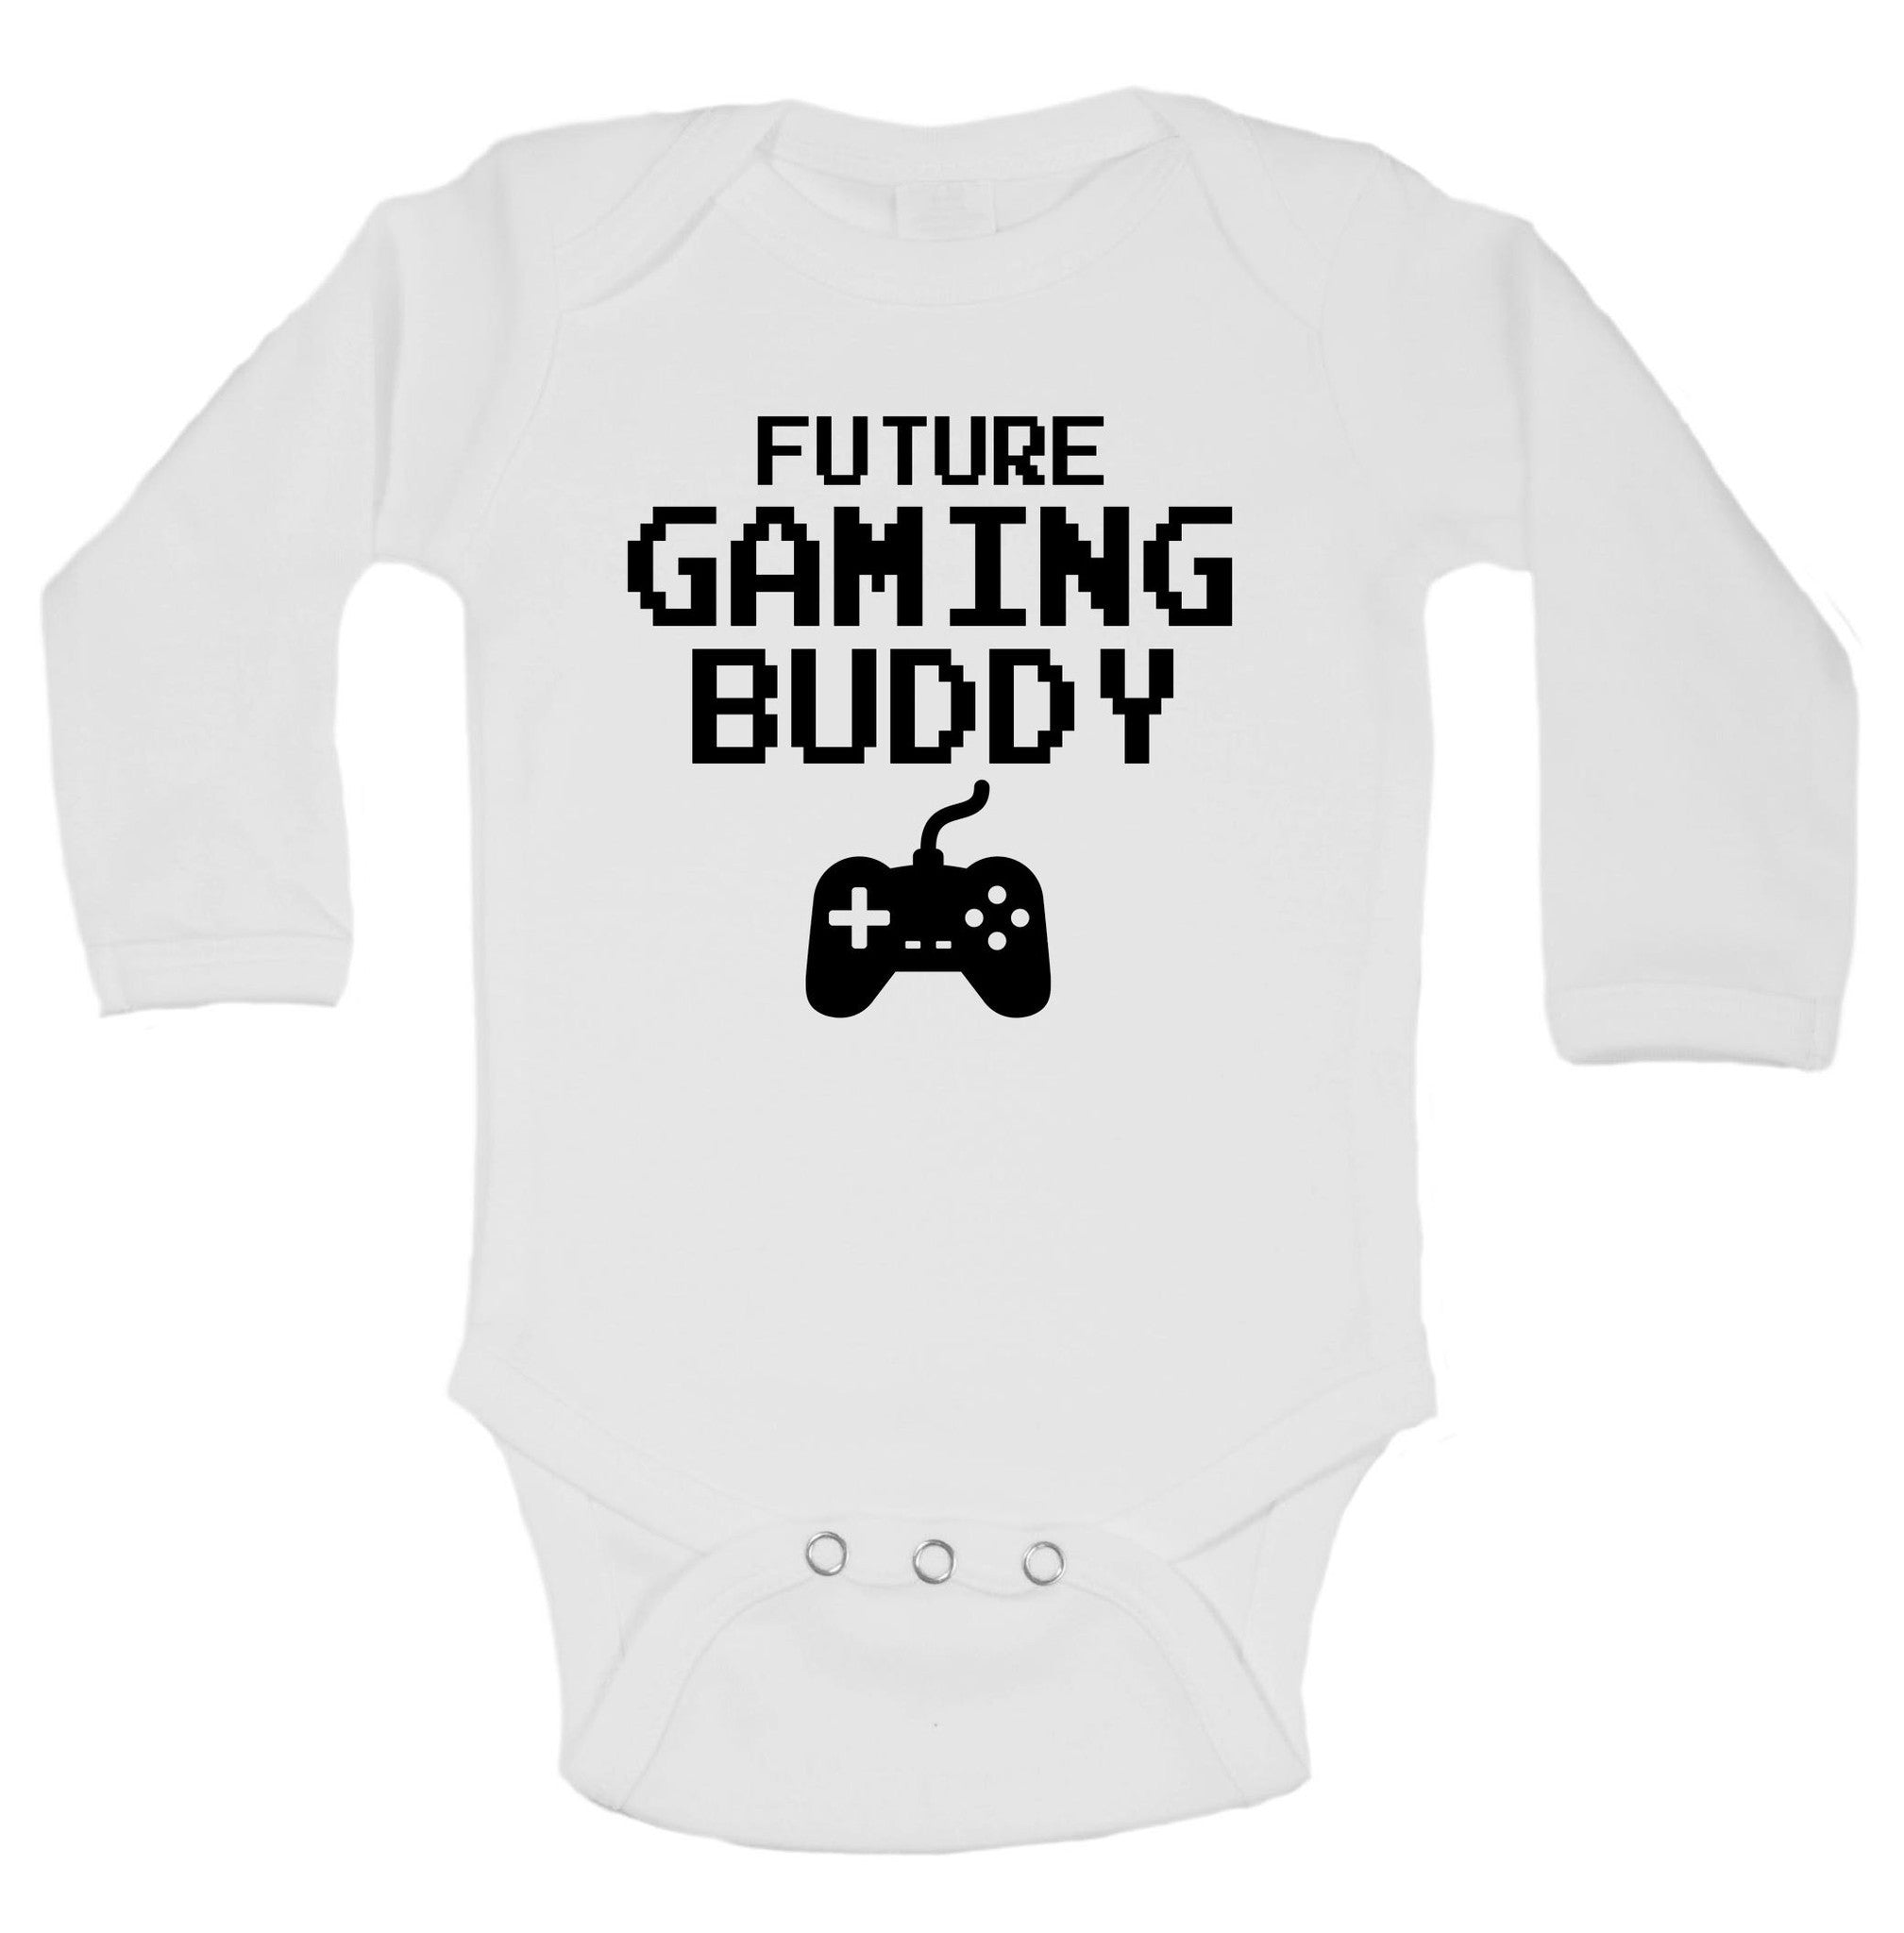 Future Gaming Buddy Funny Kids Onesie - B9 - Funny Shirts Tank Tops Burnouts and Triblends  - 1